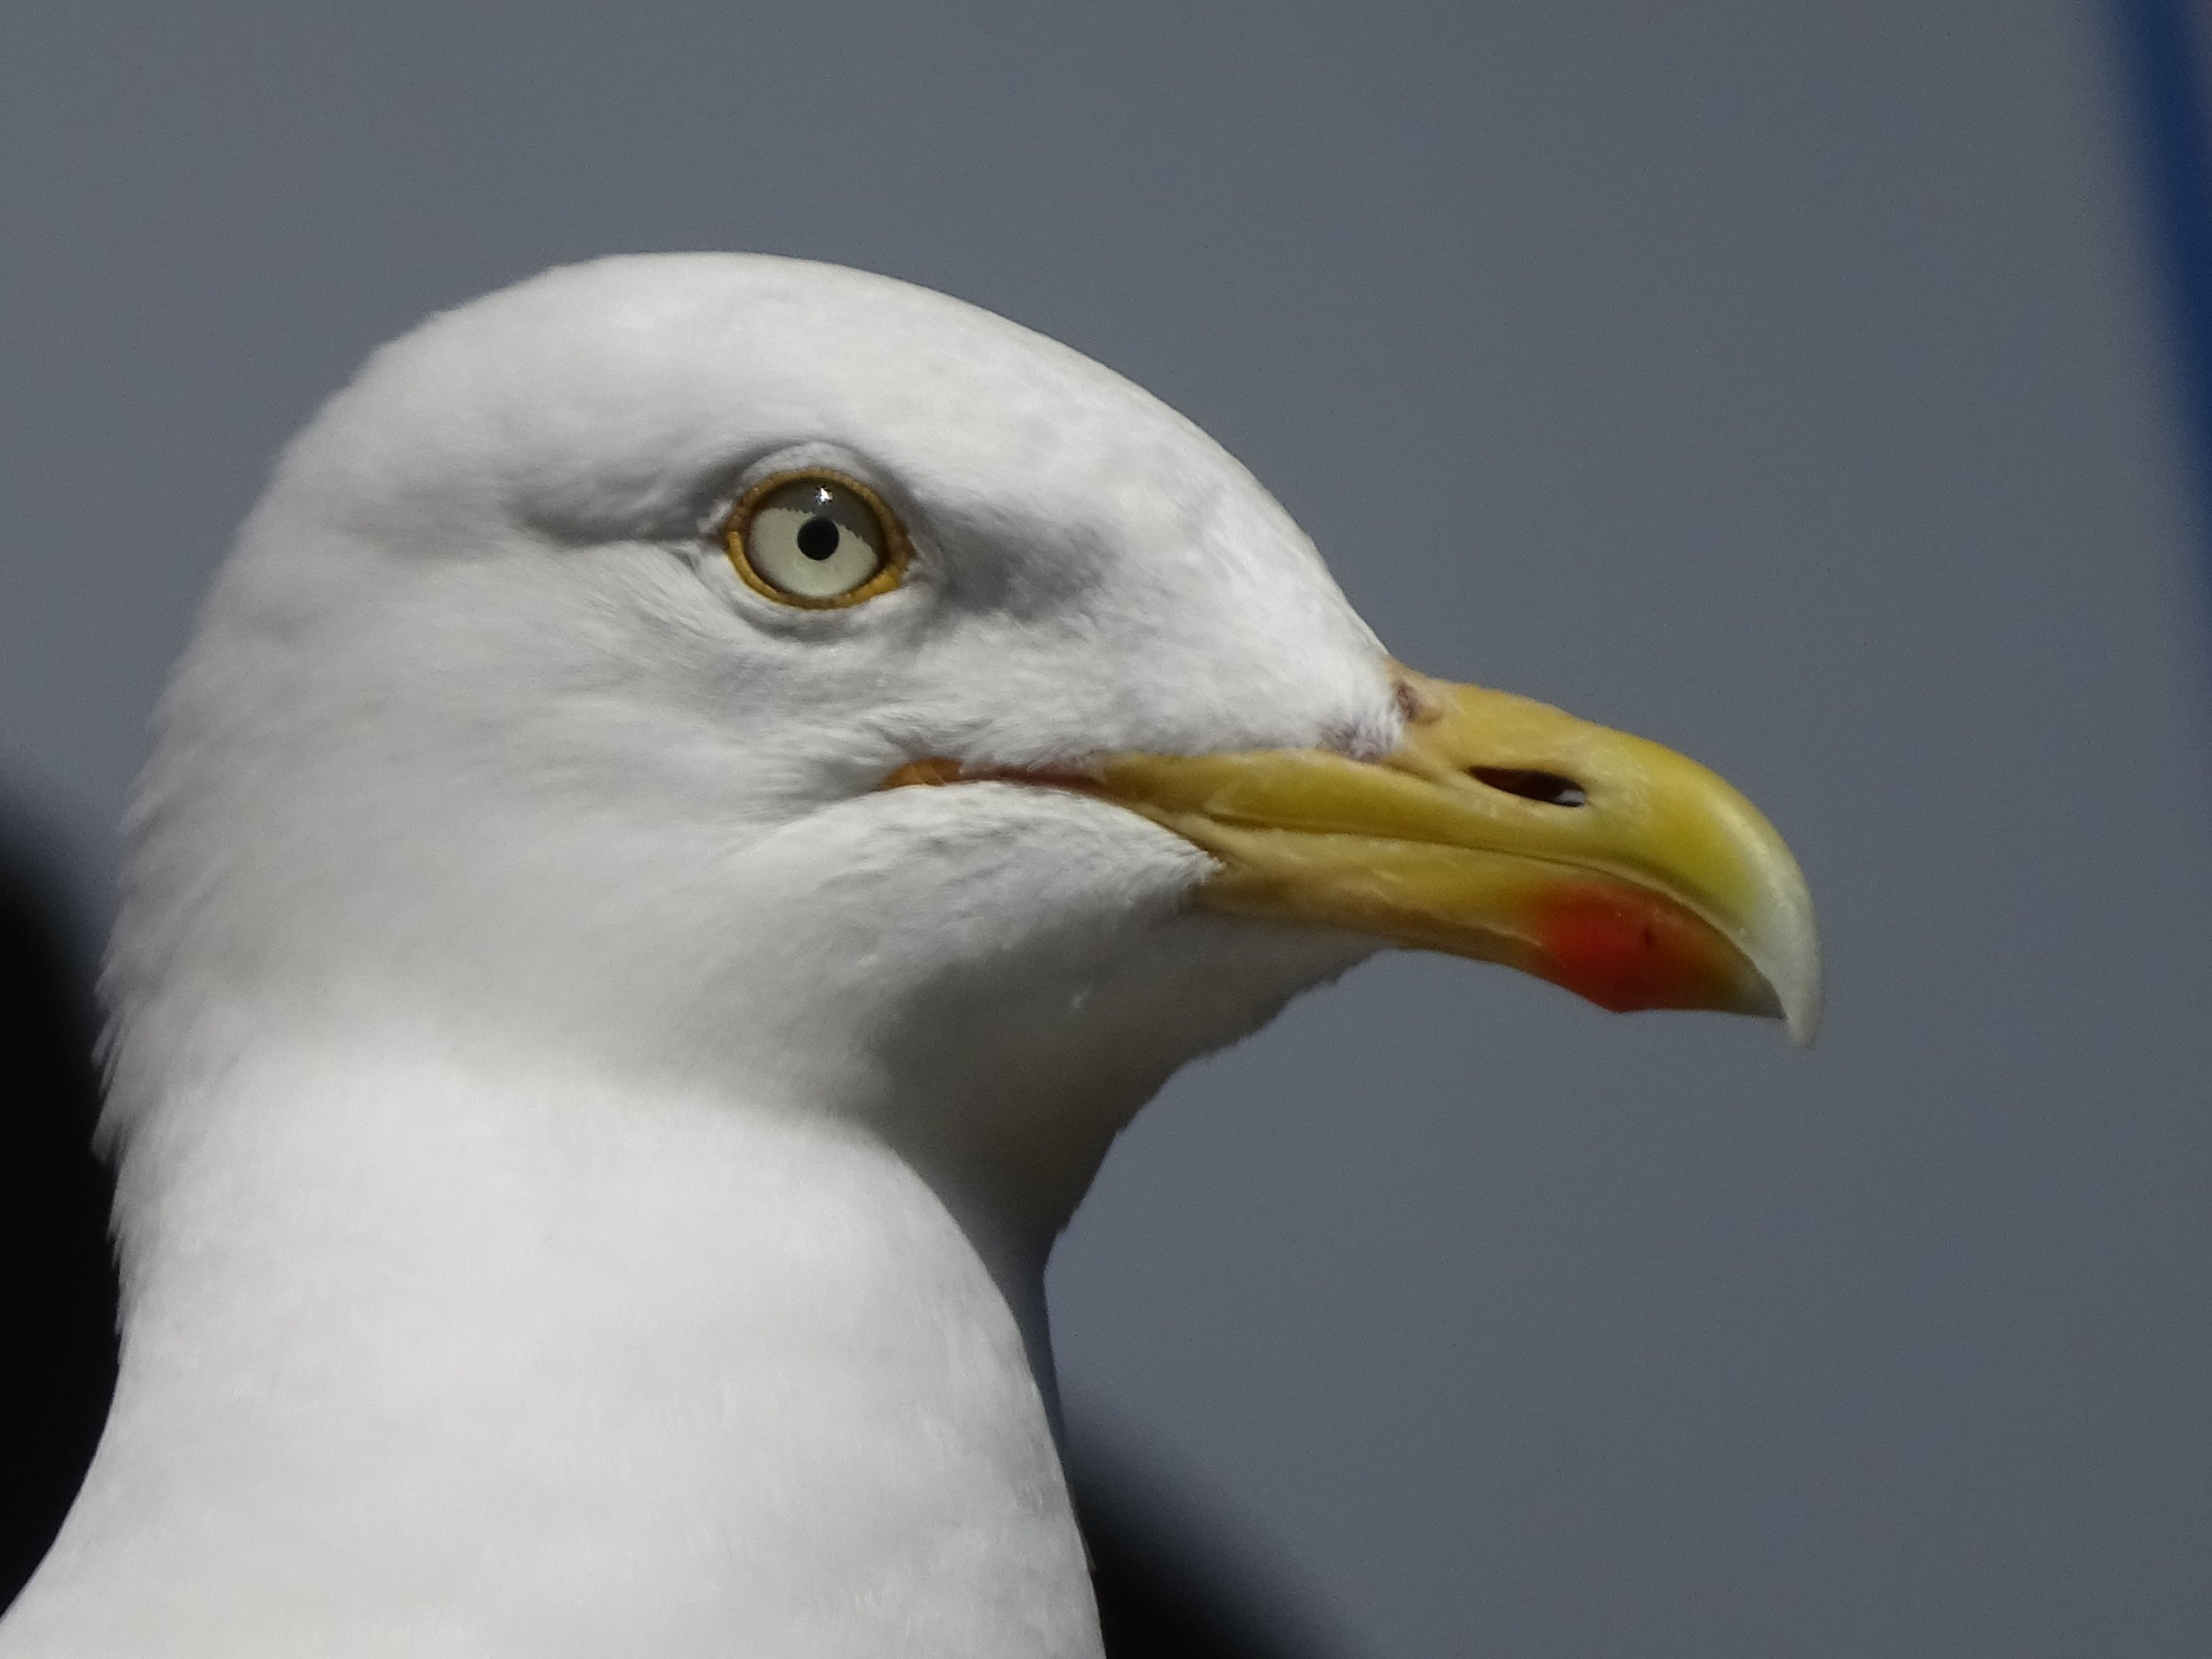 Head of a seagull